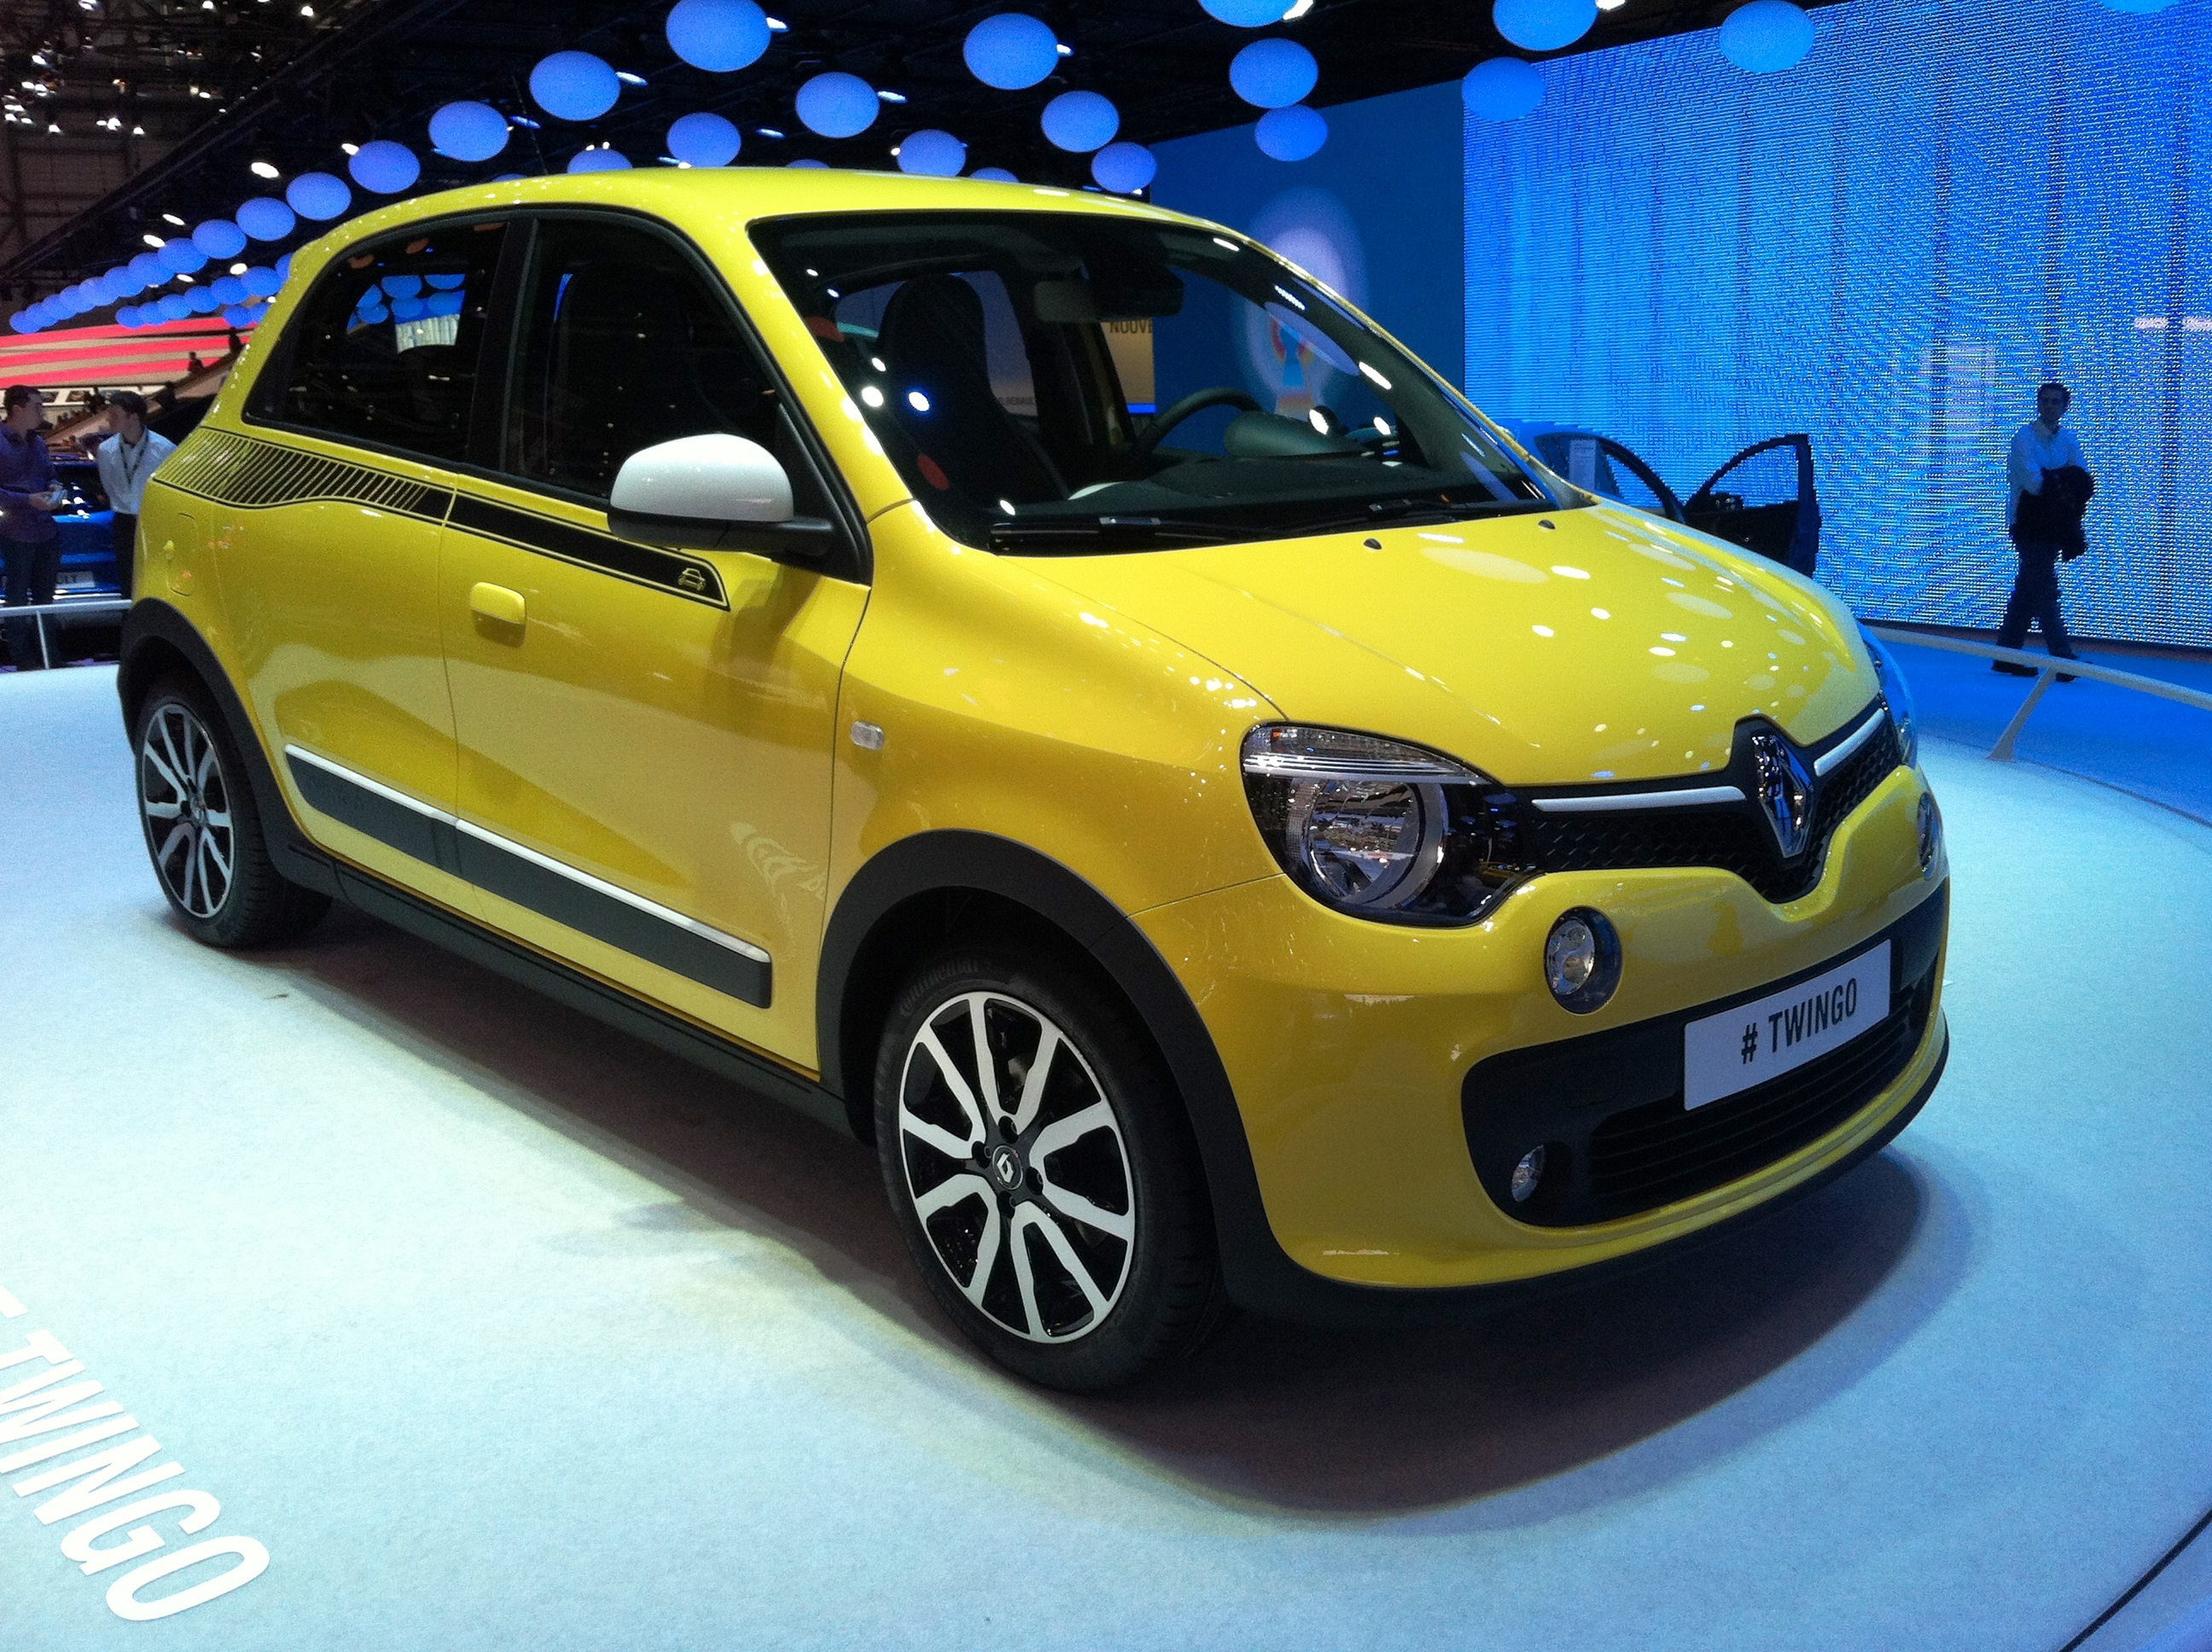 2000 renault twingo c06 pictures information and specs auto. Black Bedroom Furniture Sets. Home Design Ideas